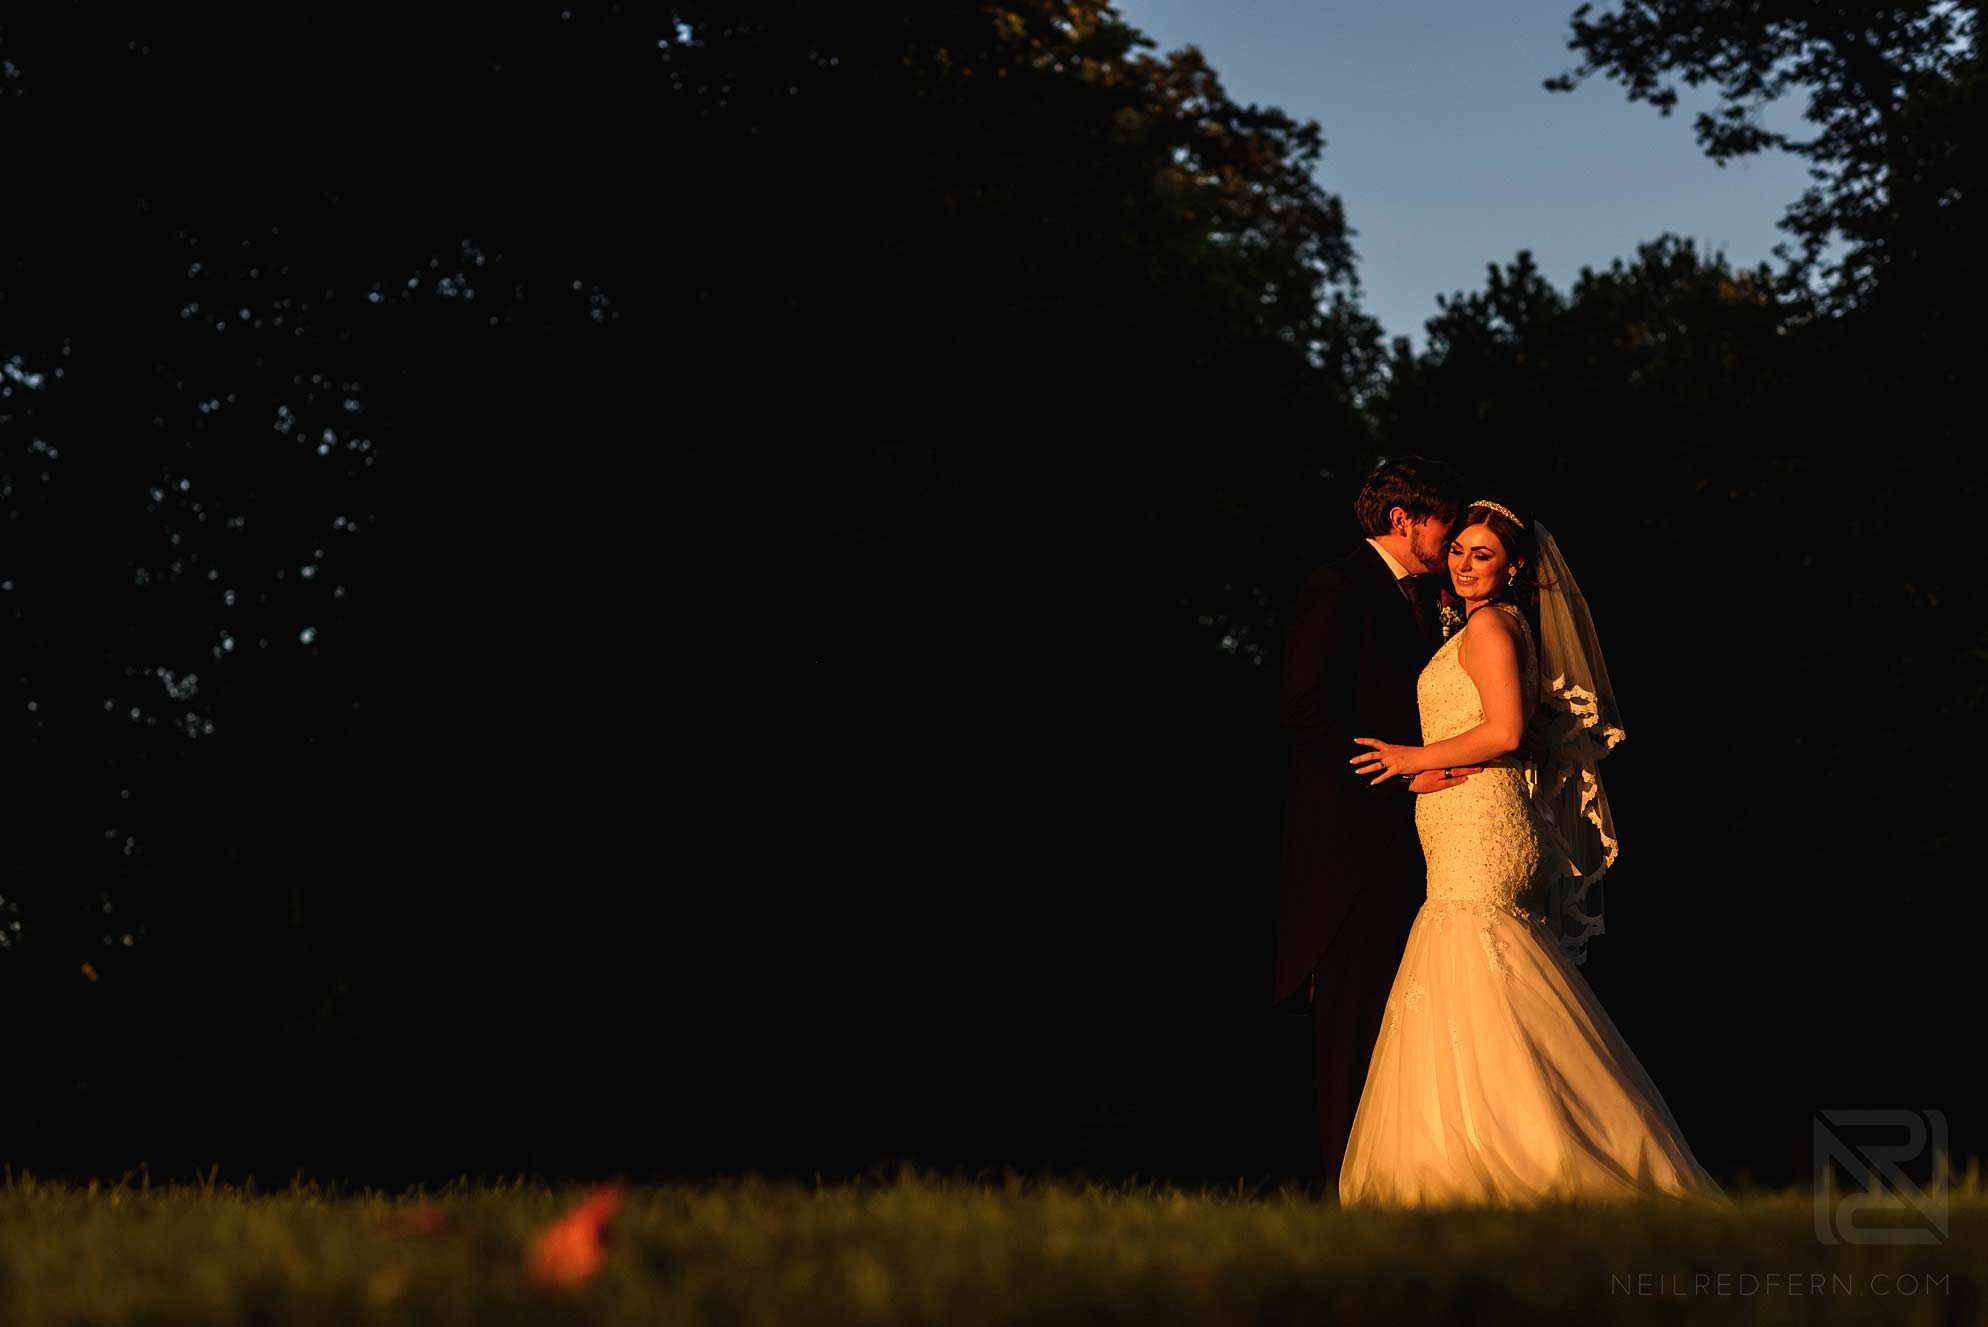 evening portrait of bride and groom